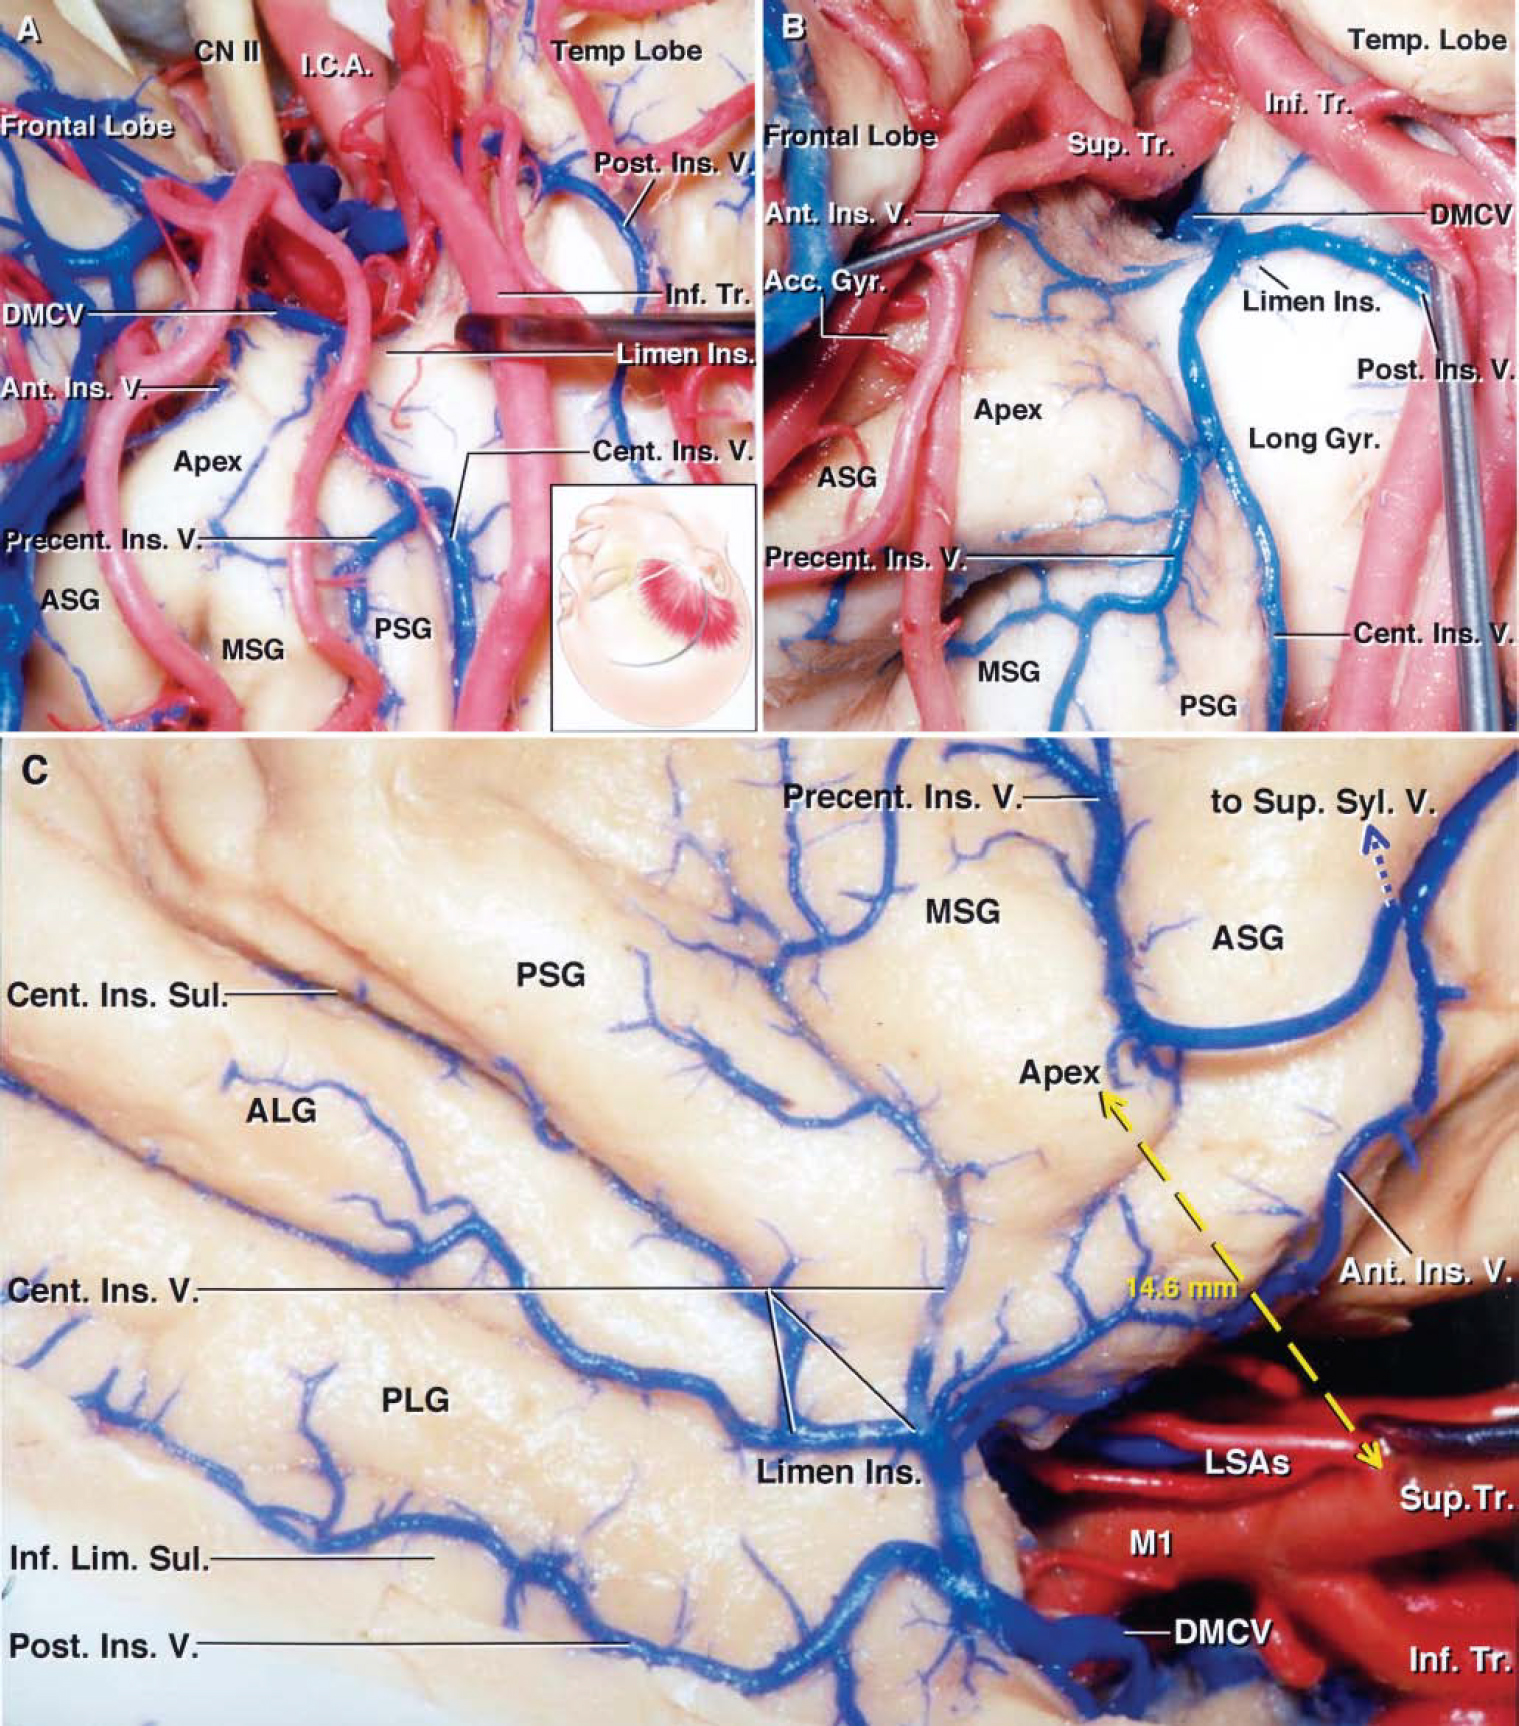 FIG. 10. Photographs obtained during cadaveric dissection. A: Right pterional exposure. The inset shows the position of the head and skin incision for the frontotemporal craniotomy. The sylvian fissure has been widely opened and the frontal and temporal opercula have been retracted to expose the anterior half of the insula. The inferior trunk has been retracted to expose the junction of the central and precentral insular veins forming a common stem. The central insular vein courses along the central insular sulcus and drains the sulcus and the adjacent portion of the anterior short gyrus. The precentral insular vein drains the middle and posterior short gyri. The posterior insular vein courses along the inferior limiting sulcus and joins the deep MCV in the limen area. B: Another right pterional exposure. The M2branches have been retracted to expose the formation of the deep MCV. The precentral insular vein drains the middle short gyrus and insular apex and joins the central insular vein behind the apex. The central insular vein courses along the central insular sulcus and joins the precentral insular vein to form a common trunk, which receives the anterior and posterior insular veins forming the deep MCV at the limen insulae. C: Lateral view of right cerebral hemisphere. The frontoparietal and temporal opercula have been retracted to expose the course of the insular veins. The four insular veins and the initial portion of the deep MCV have been exposed. The anterior insular vein courses downward and backward near the anterior limiting sulcus, drains the anterior limiting sulcus and anterior short gyrus, and empties into the deep MCV. The precentral insular vein, the insular vein most commonly connected with the SSV, drains the middle short gyrus and the insular apex, crosses the anterior short gyrus, and turns superficially to empty into the SSV without contributing to the formation of the deep MCV. The central insular vein courses anteroinferiorly; drains the cent